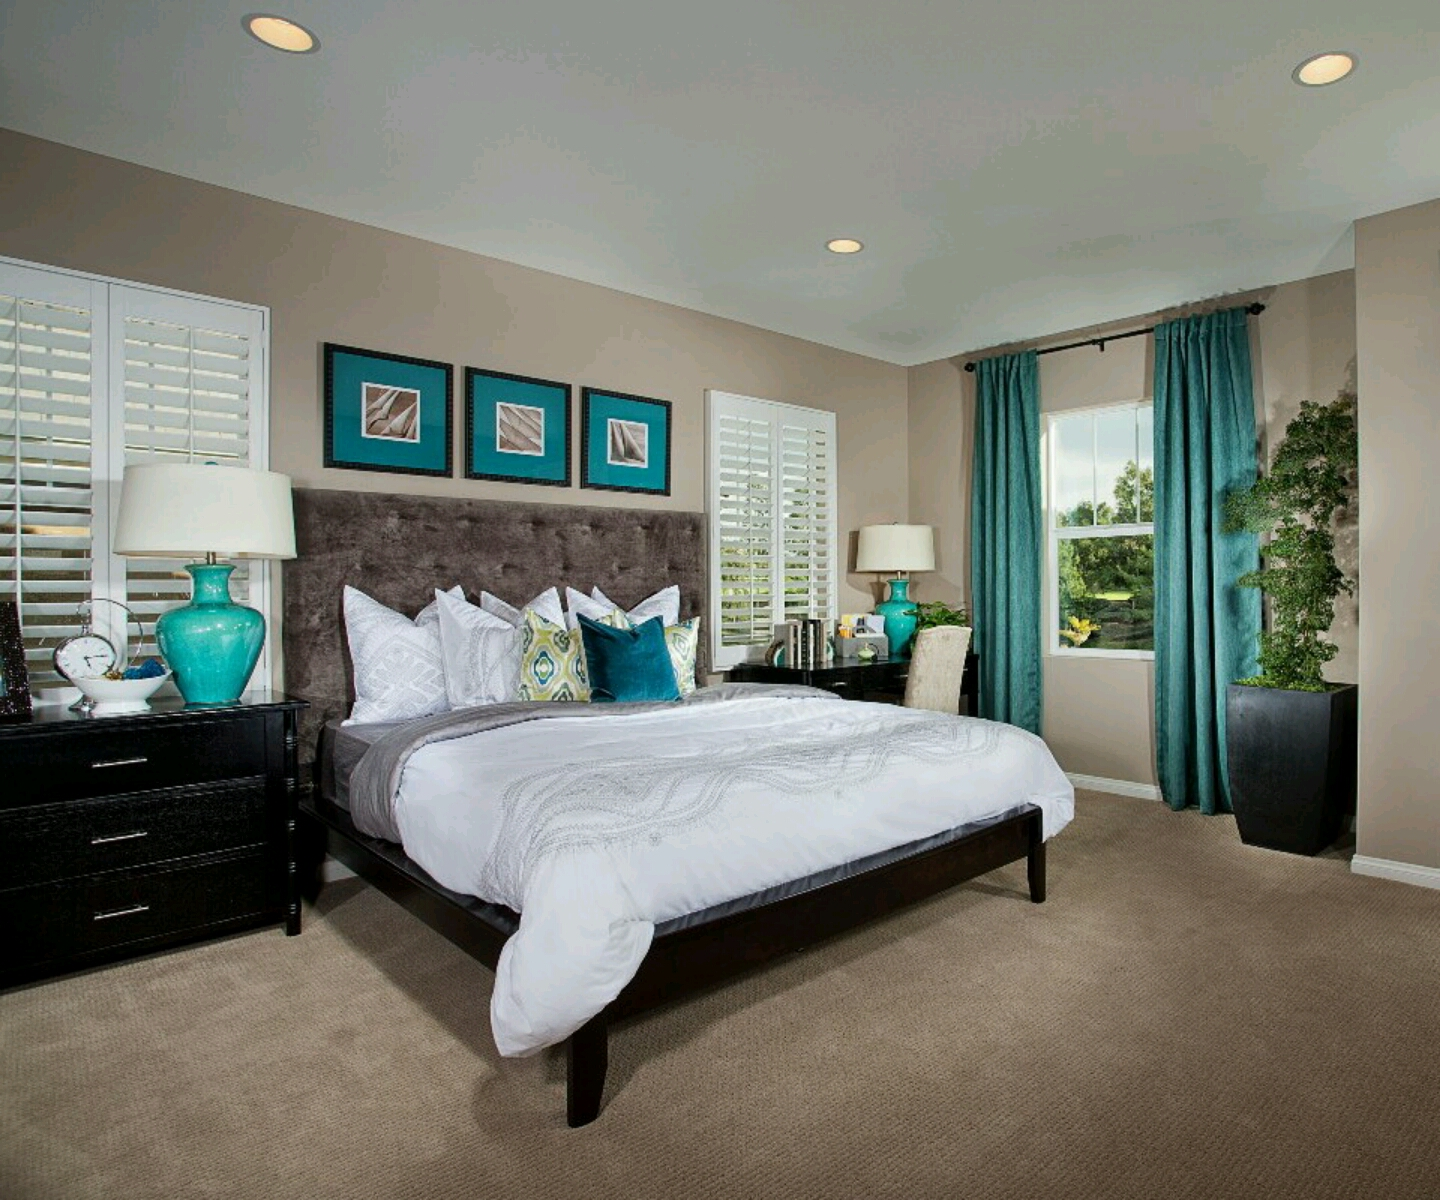 Modern homes bedrooms decoration designs ideas. title=